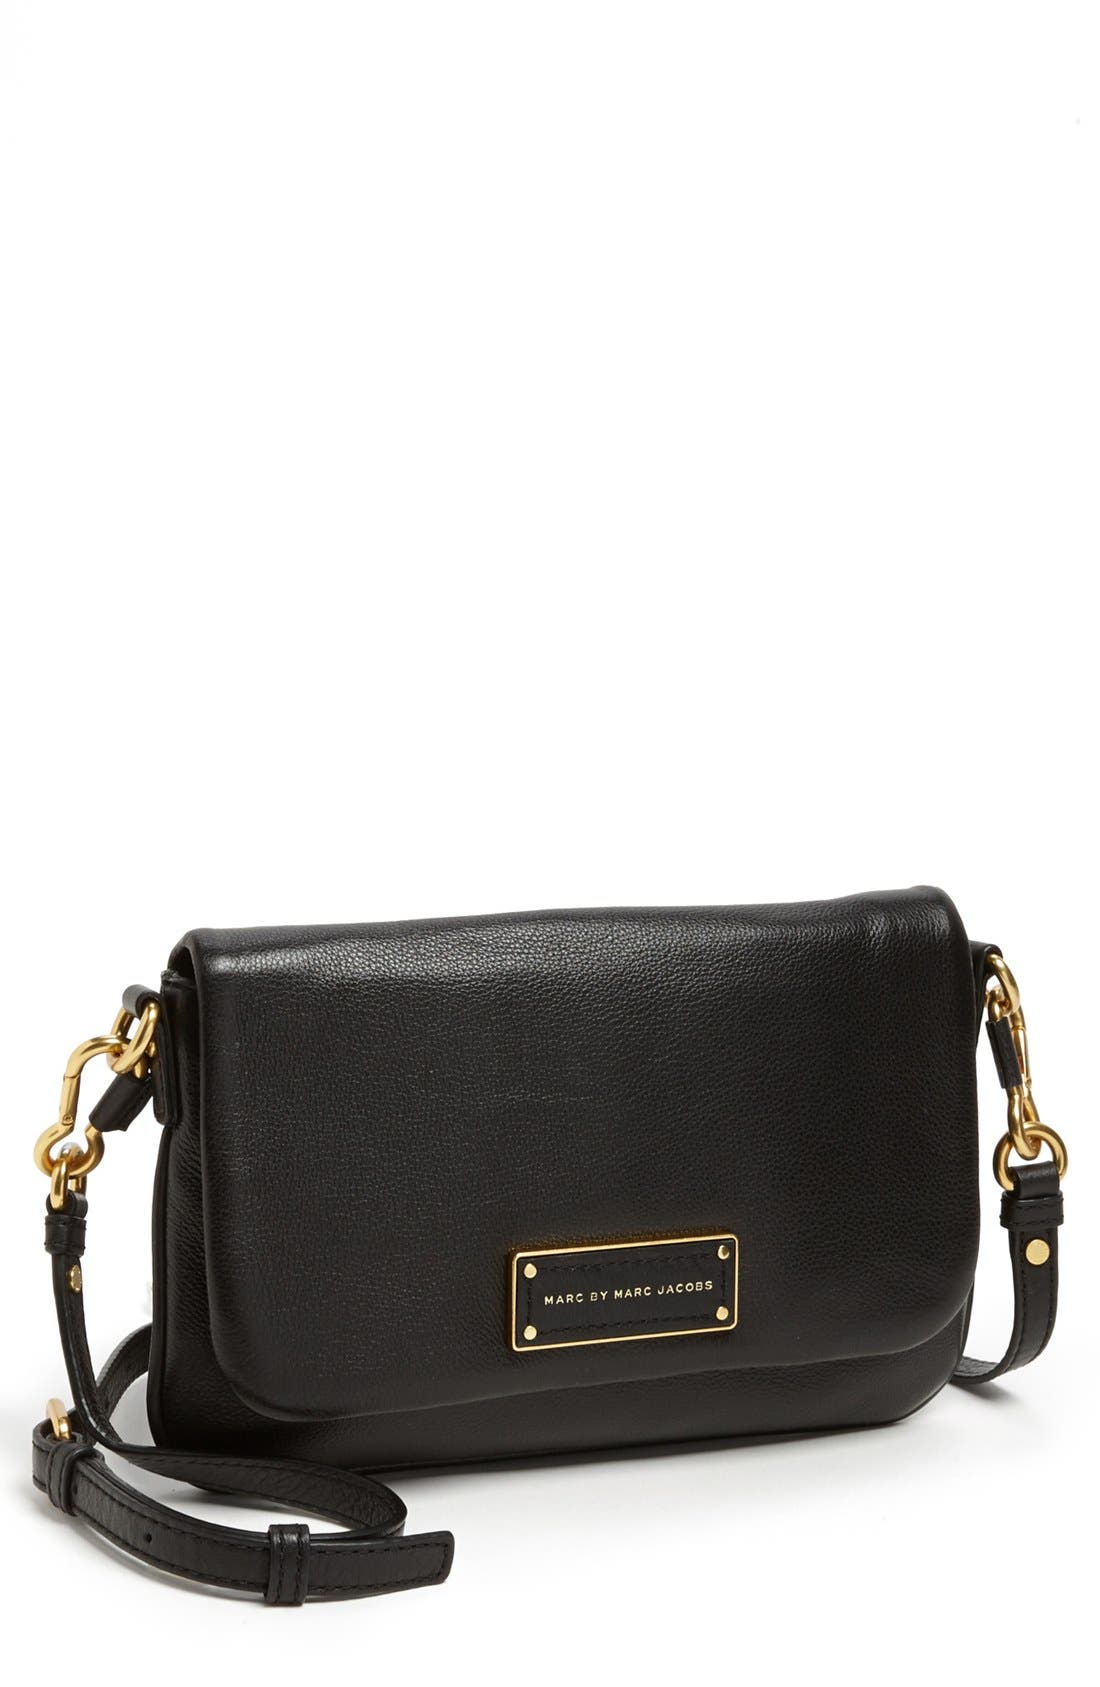 MARC BY MARC JACOBS 'Too Hot to Handle - Percy' Crossbody Bag,                         Main,                         color, 001